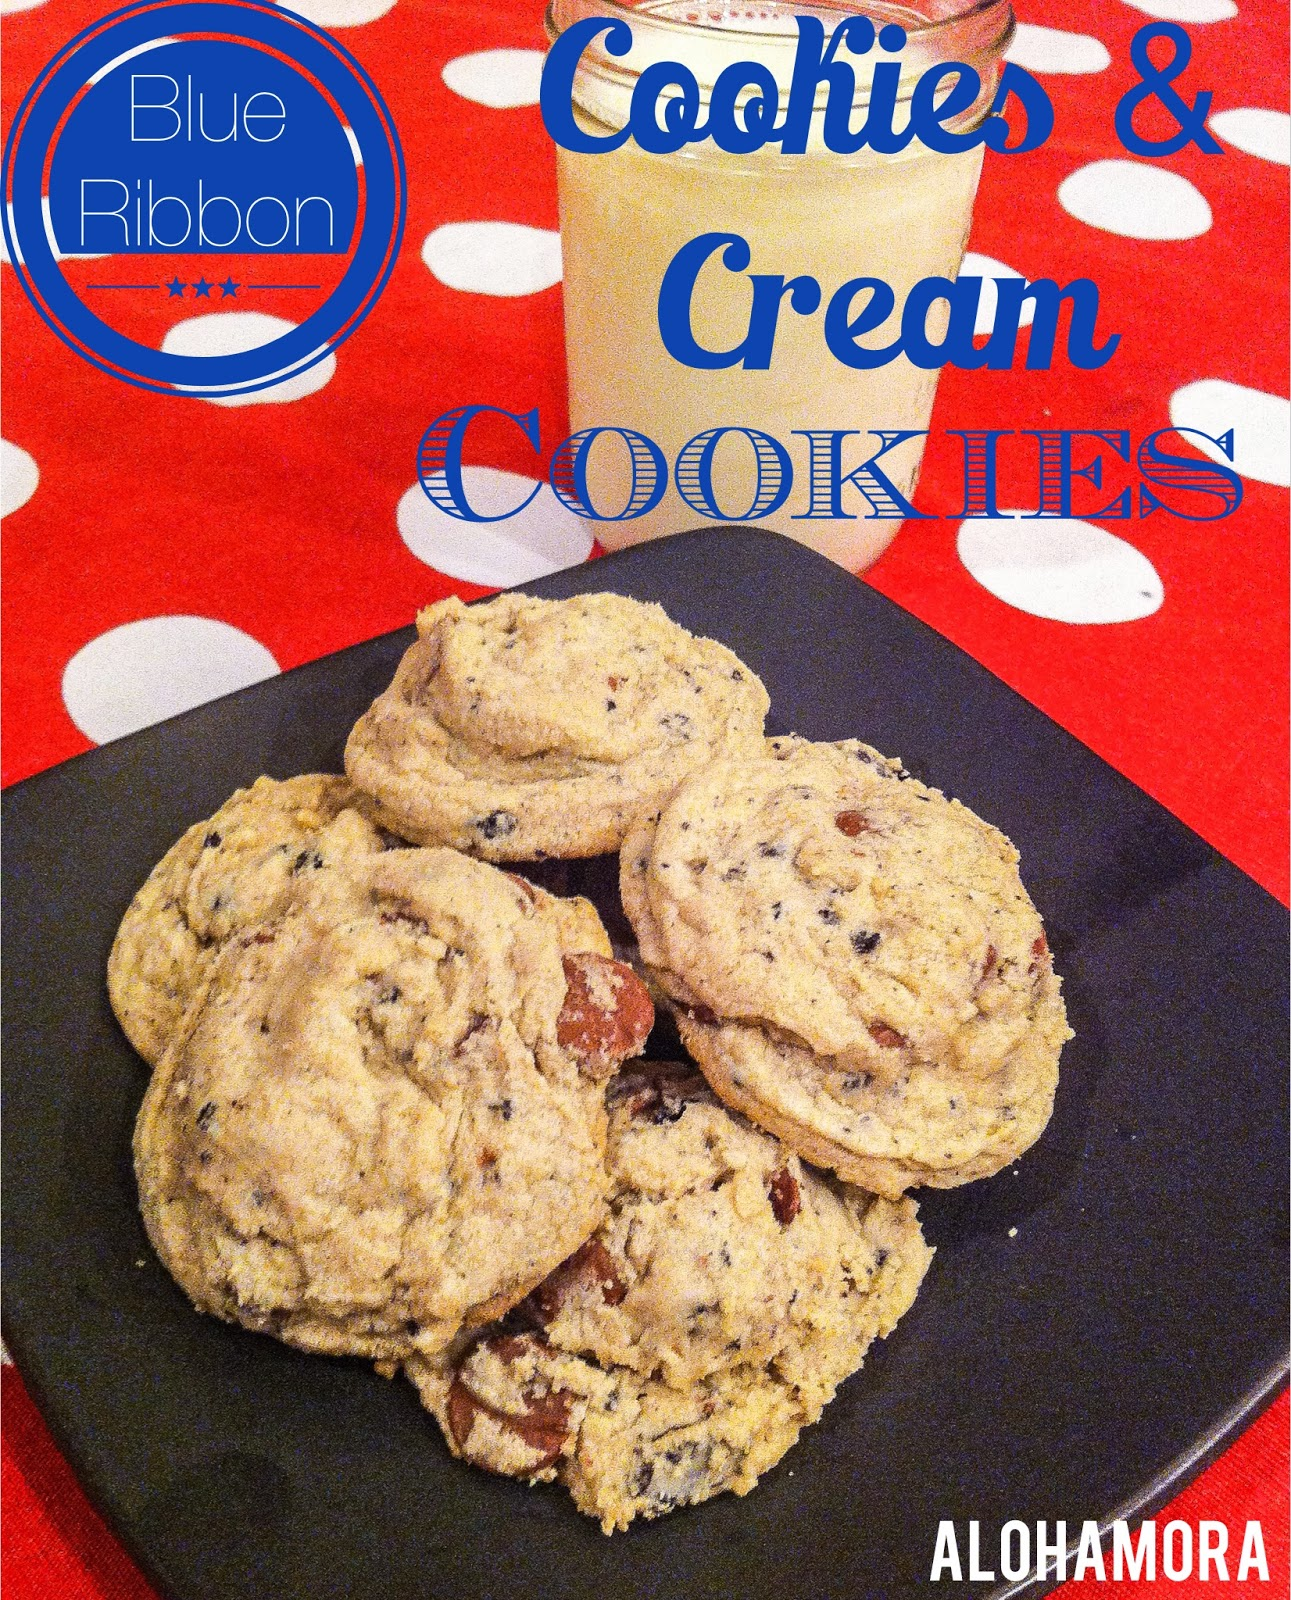 Blue Ribbon Cookies & Cream Cookies that are soft, delicious, and crowd pleasing. Alohamora Open a Book http://alohamoraopenabook.blogspot.com/